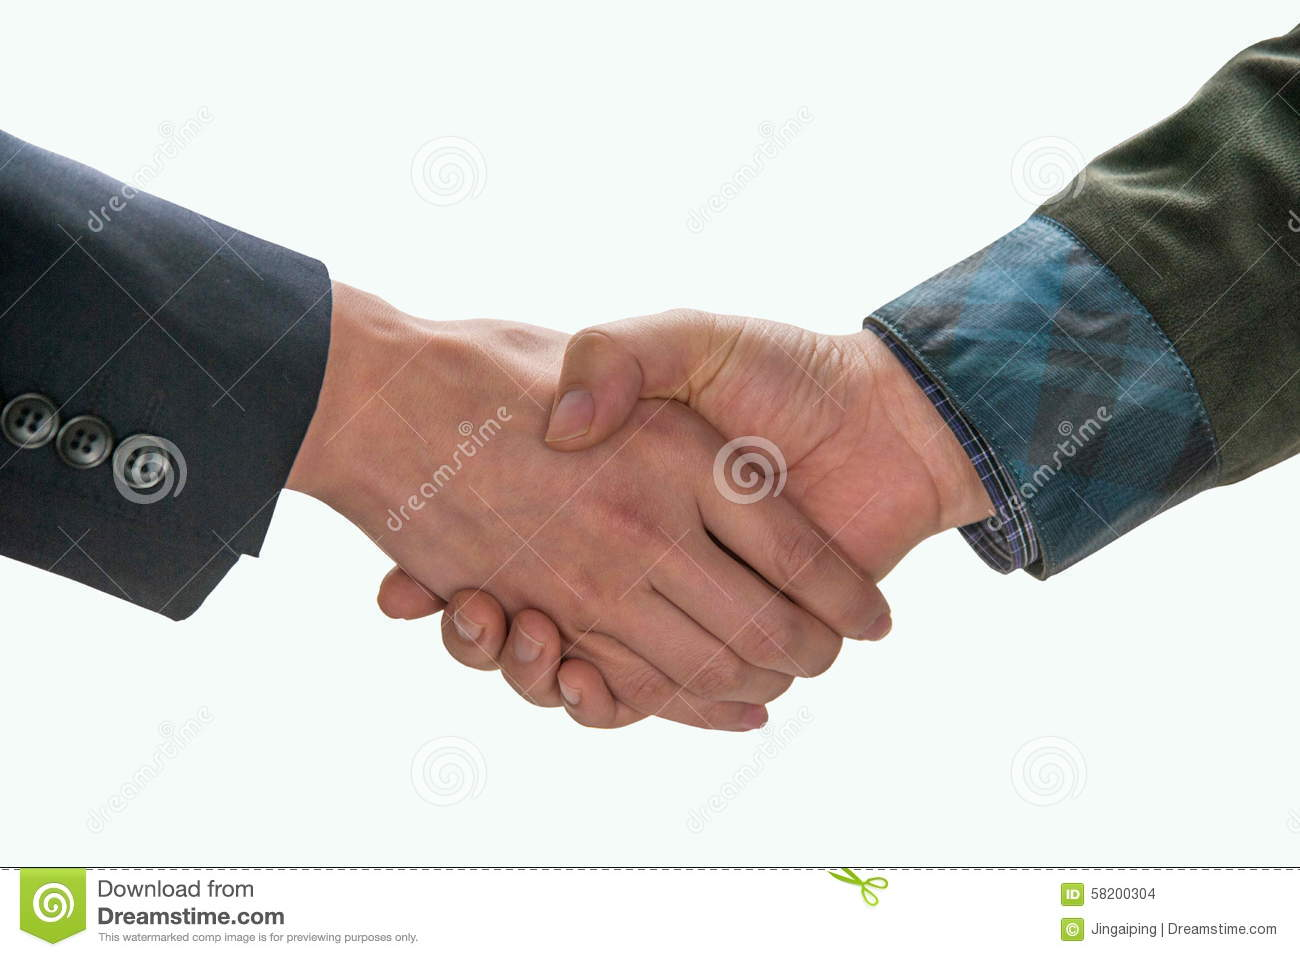 Warm Handshake Stock Photos & Warm Handshake Stock Images - Alamy